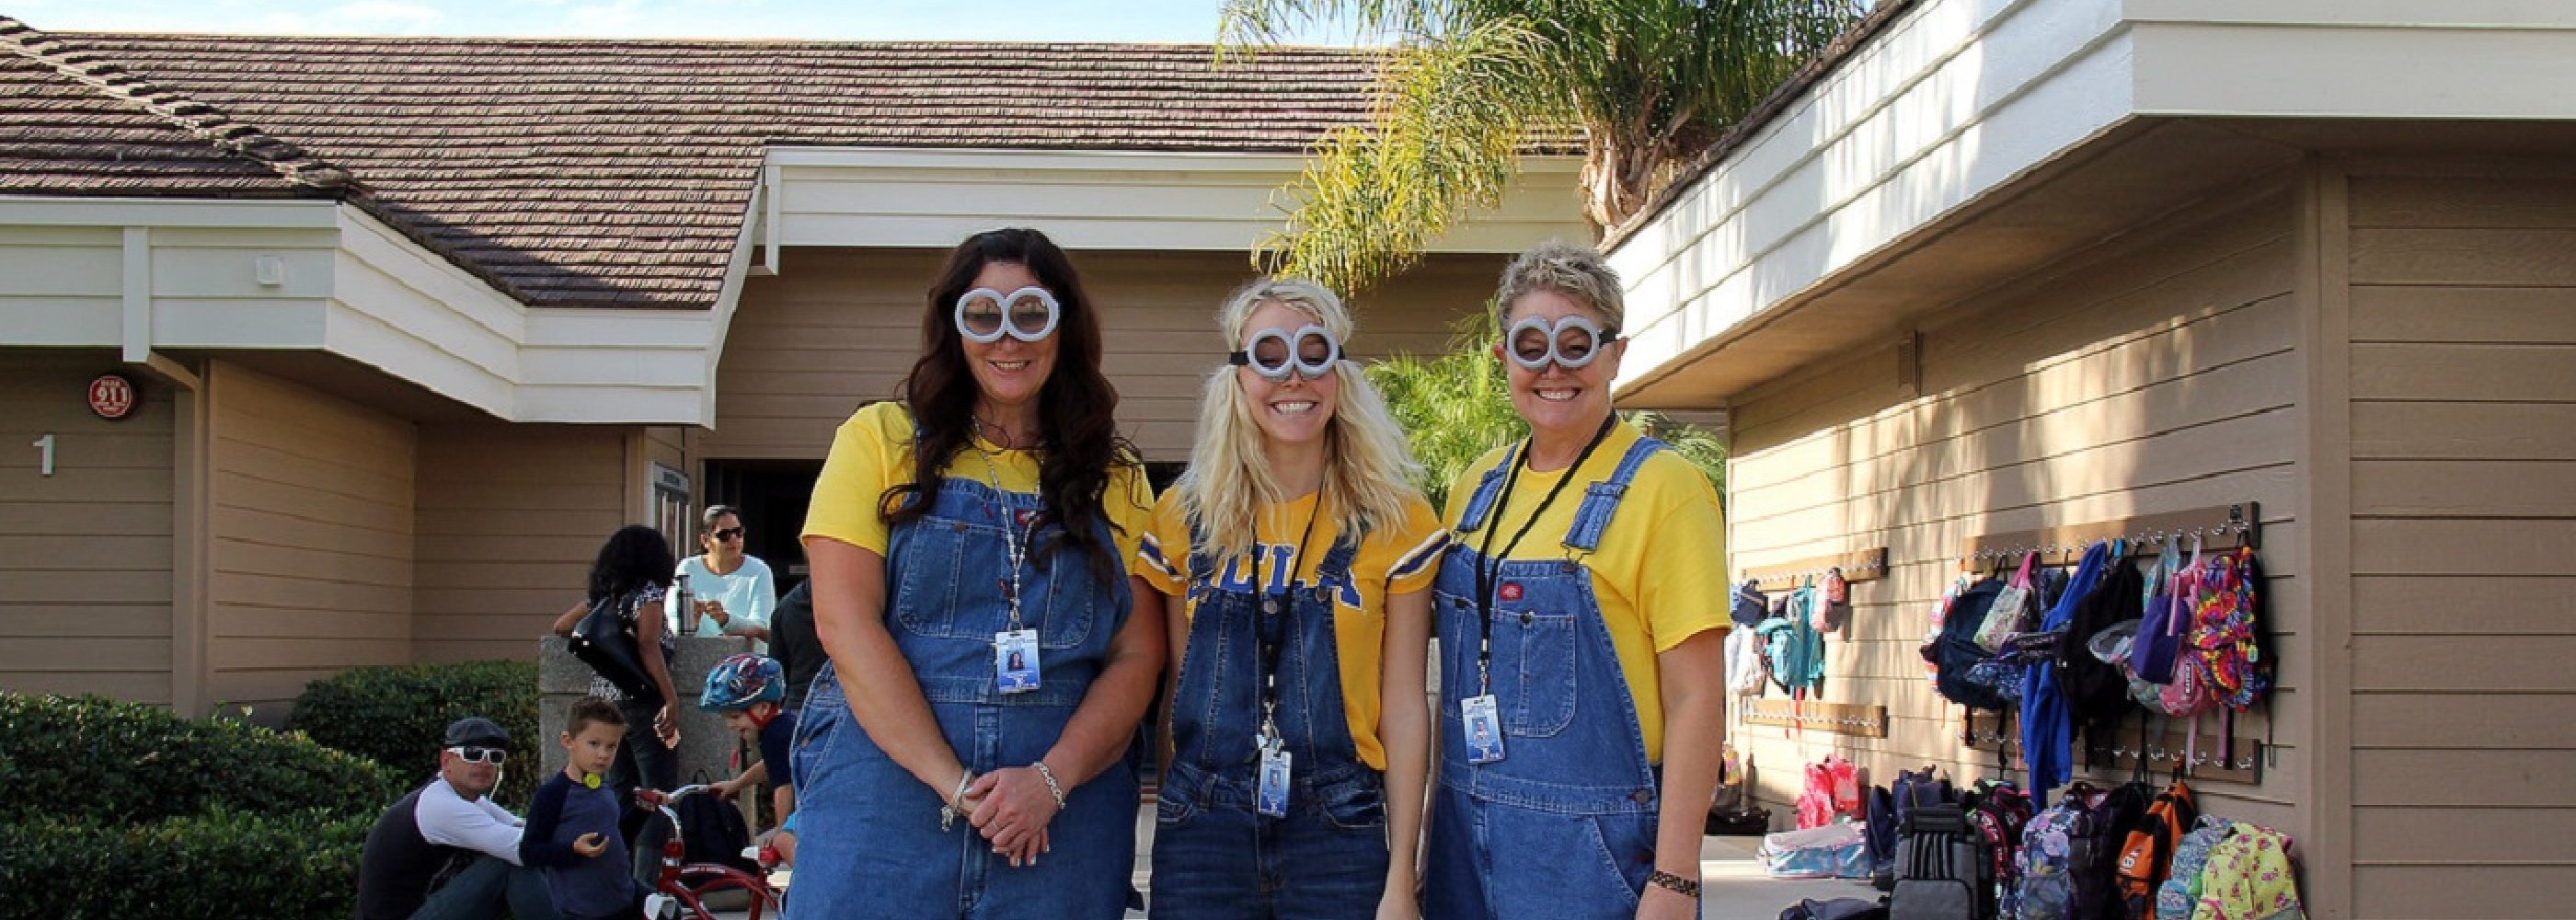 Teachers Dressed as Minions